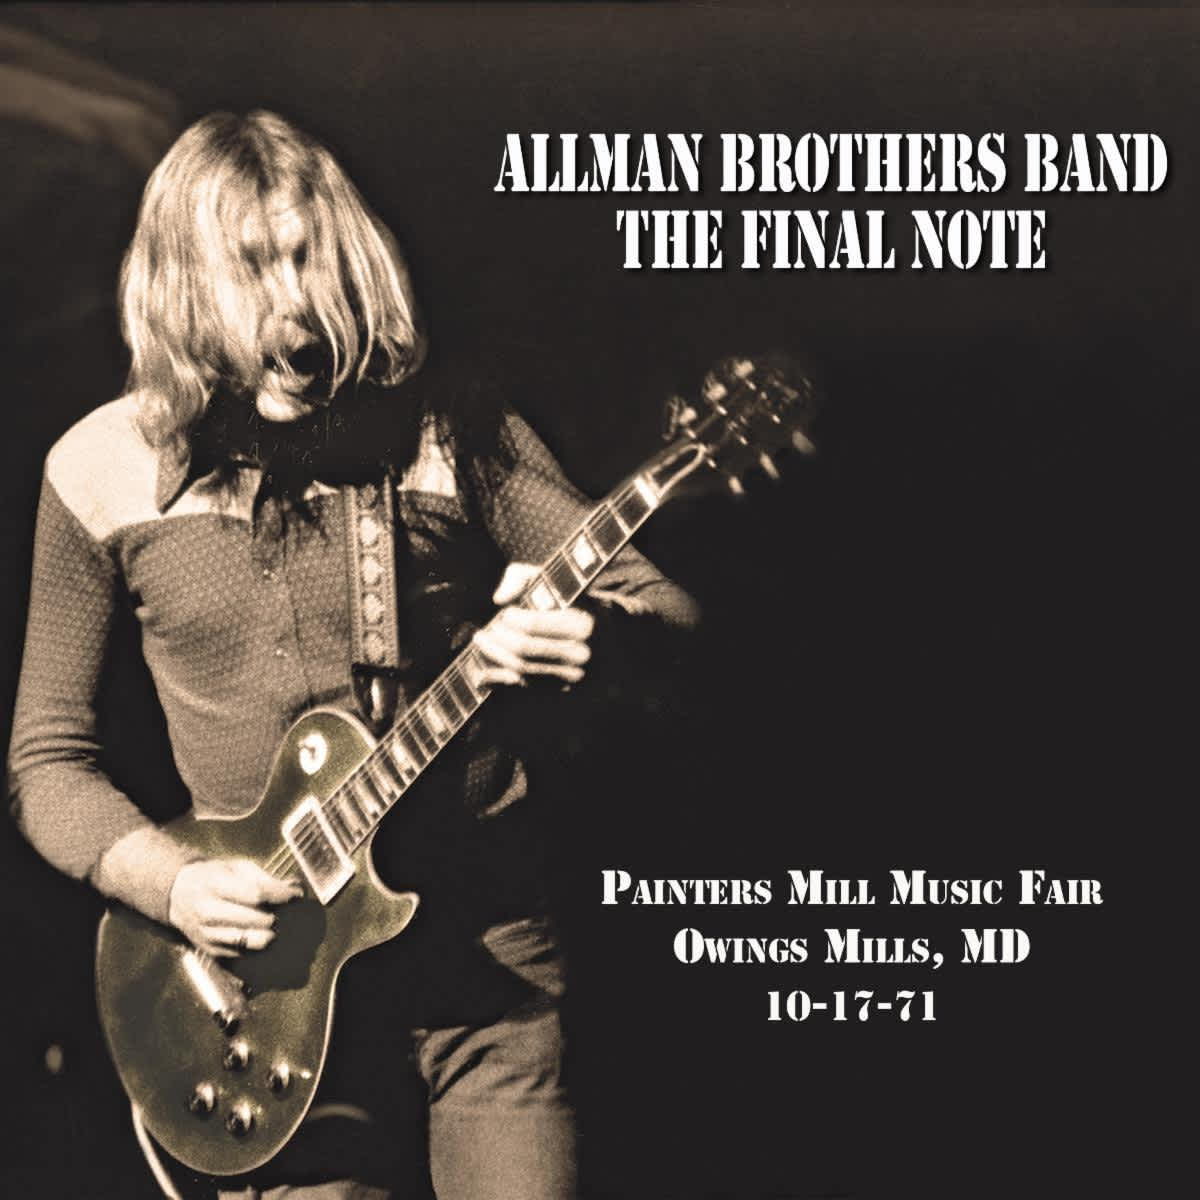 Allman Brothers Band - The Final Note